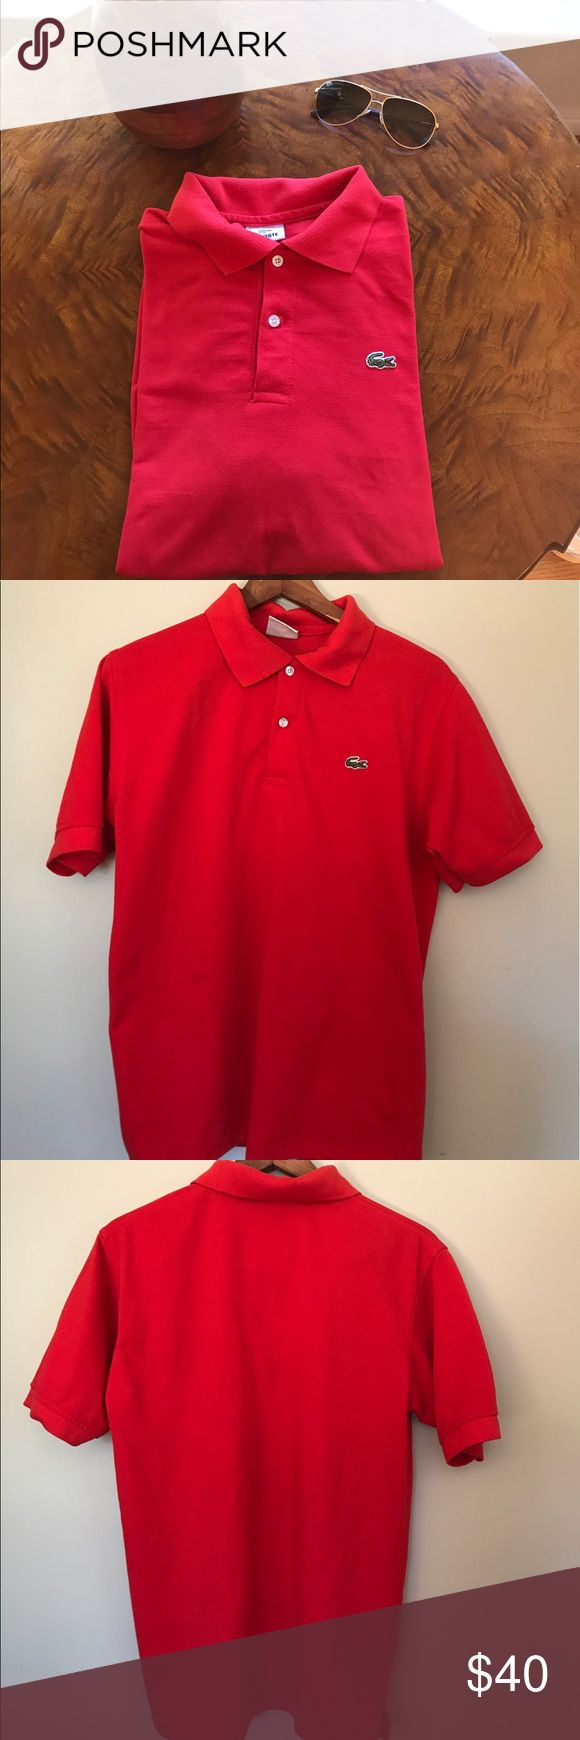 Lacoste Men's Polo Red size Large 5 Short Sleeve Short sleeve bright red men's lacoste polo Size 5 or large Lacoste Shirts Polos